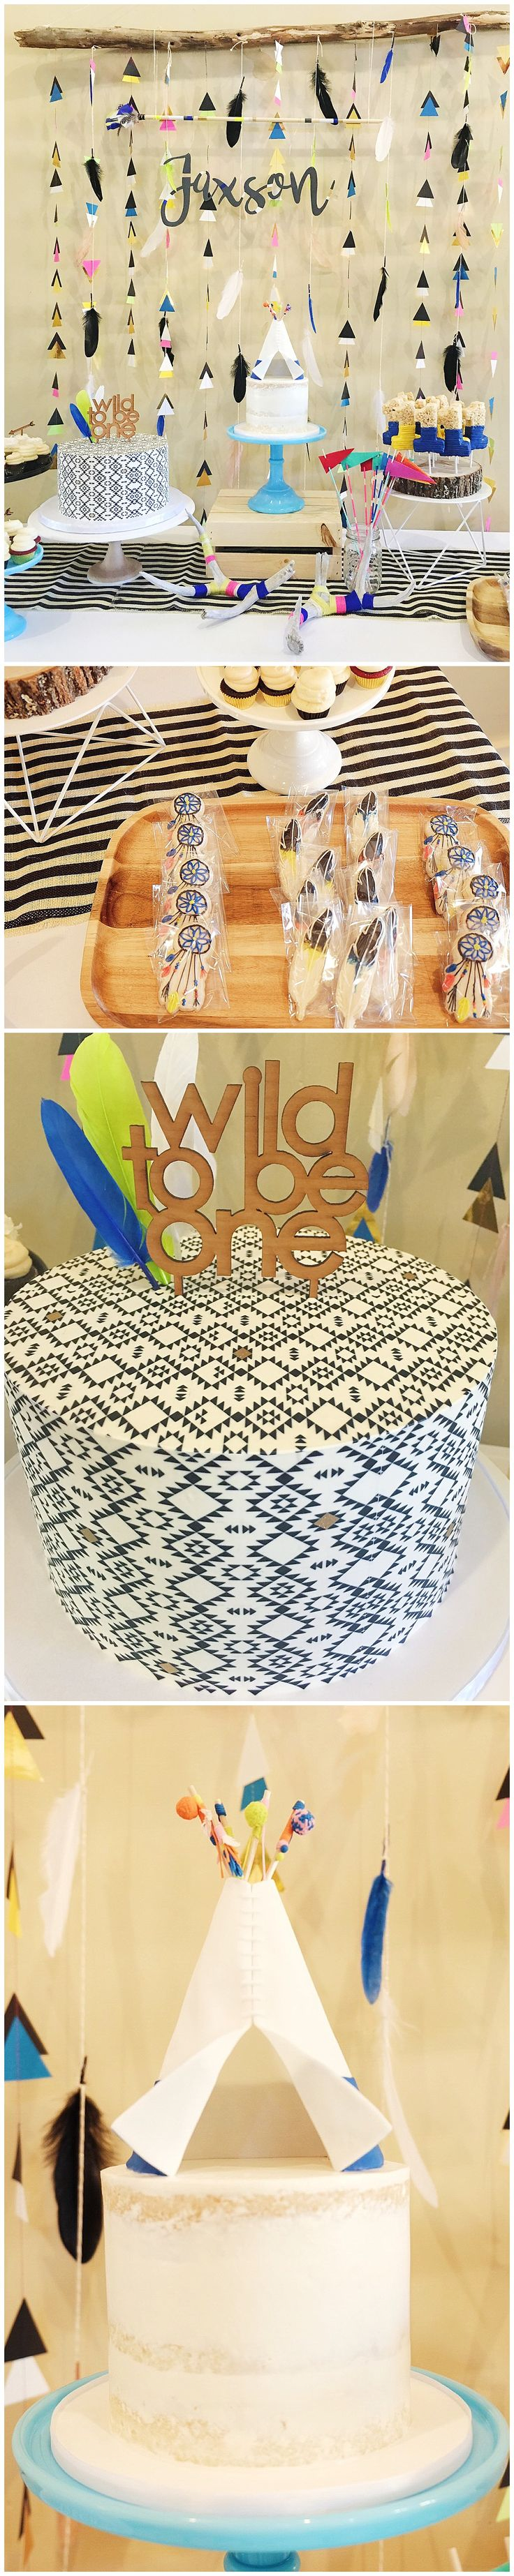 Events – Wild Childdessert table, wild one, bow and arrow, boho, sweet and saucy , teepee, navaho , feather cookies , yarn bomb , antlers , first birthday, smash cake, dream catcher